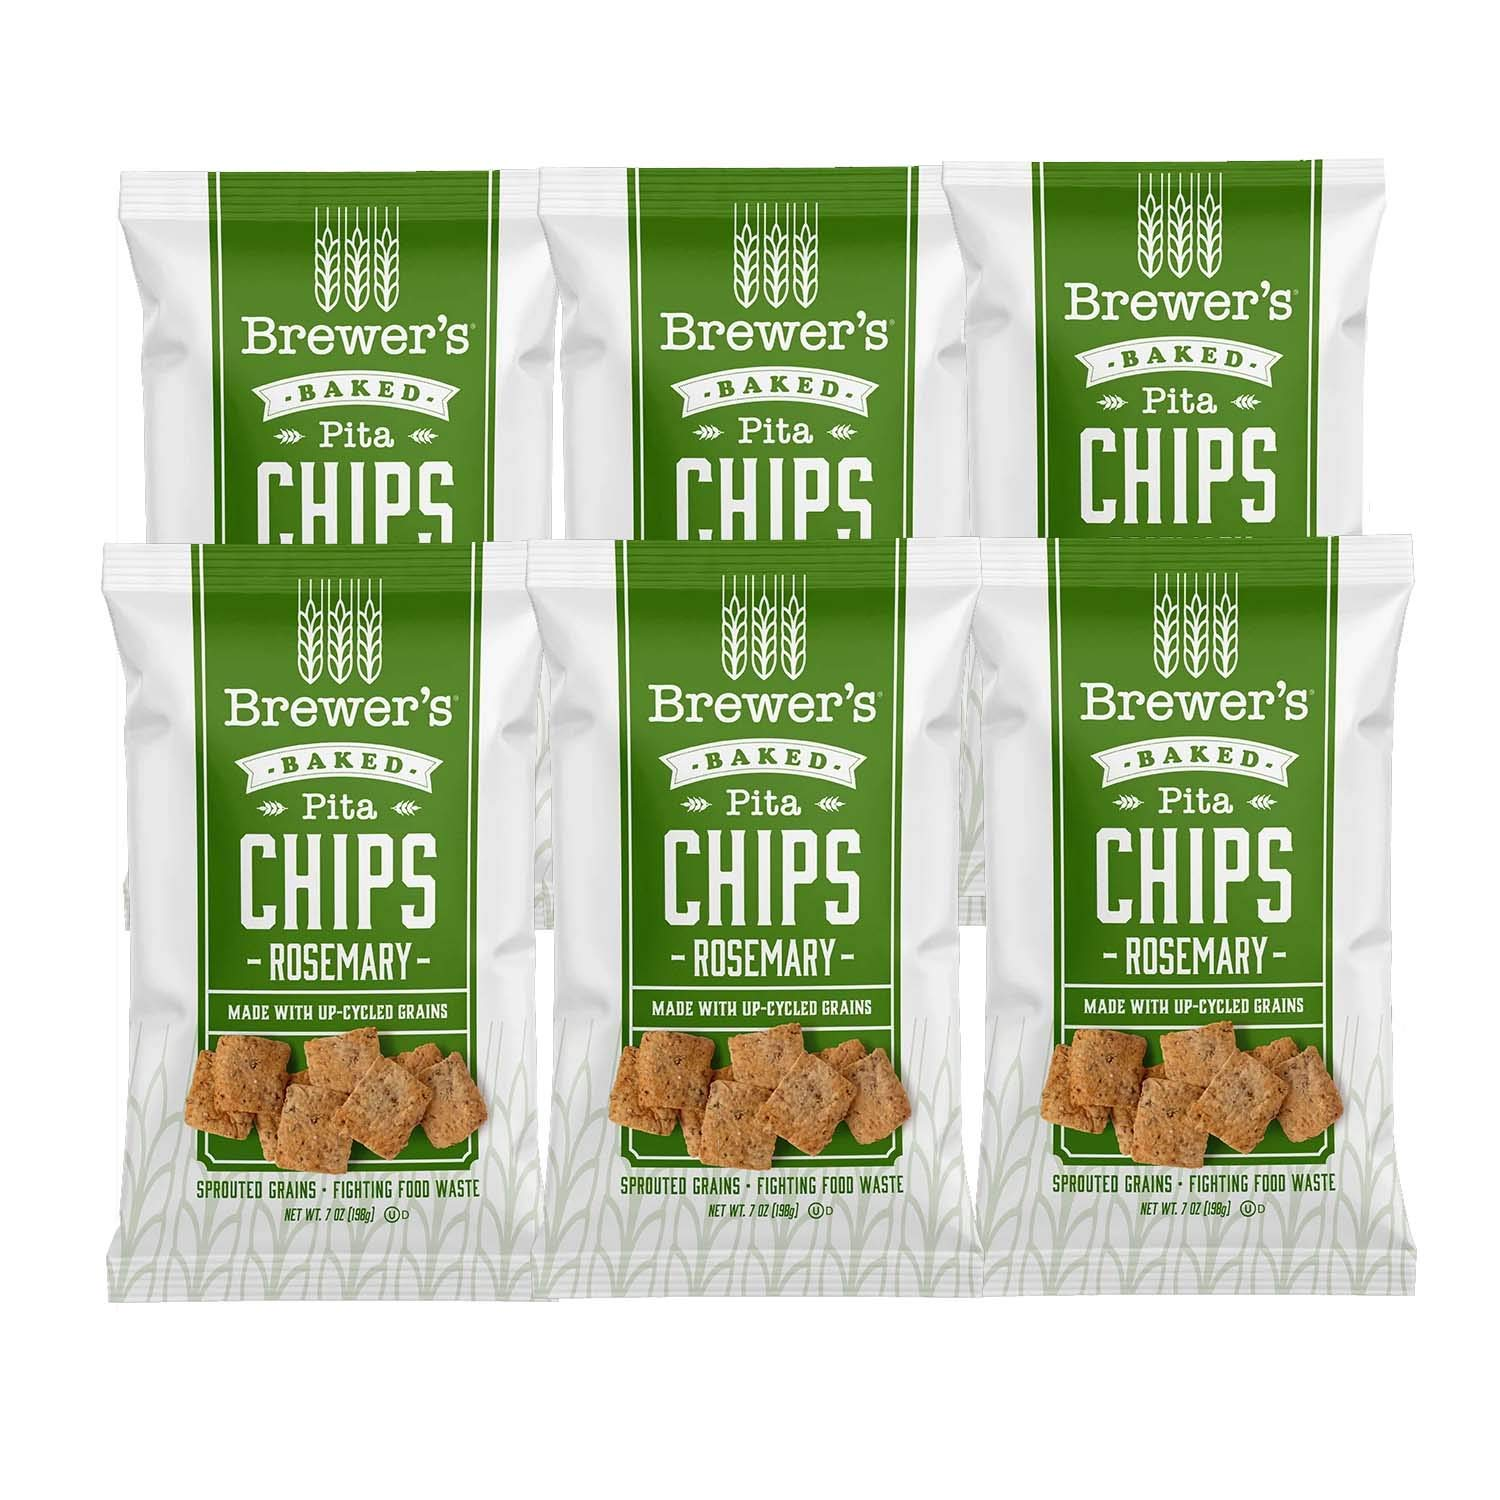 2021 spring and summer new Brewer's Baked Pita Chips 7 Rosemary 6 oz Count Max 67% OFF